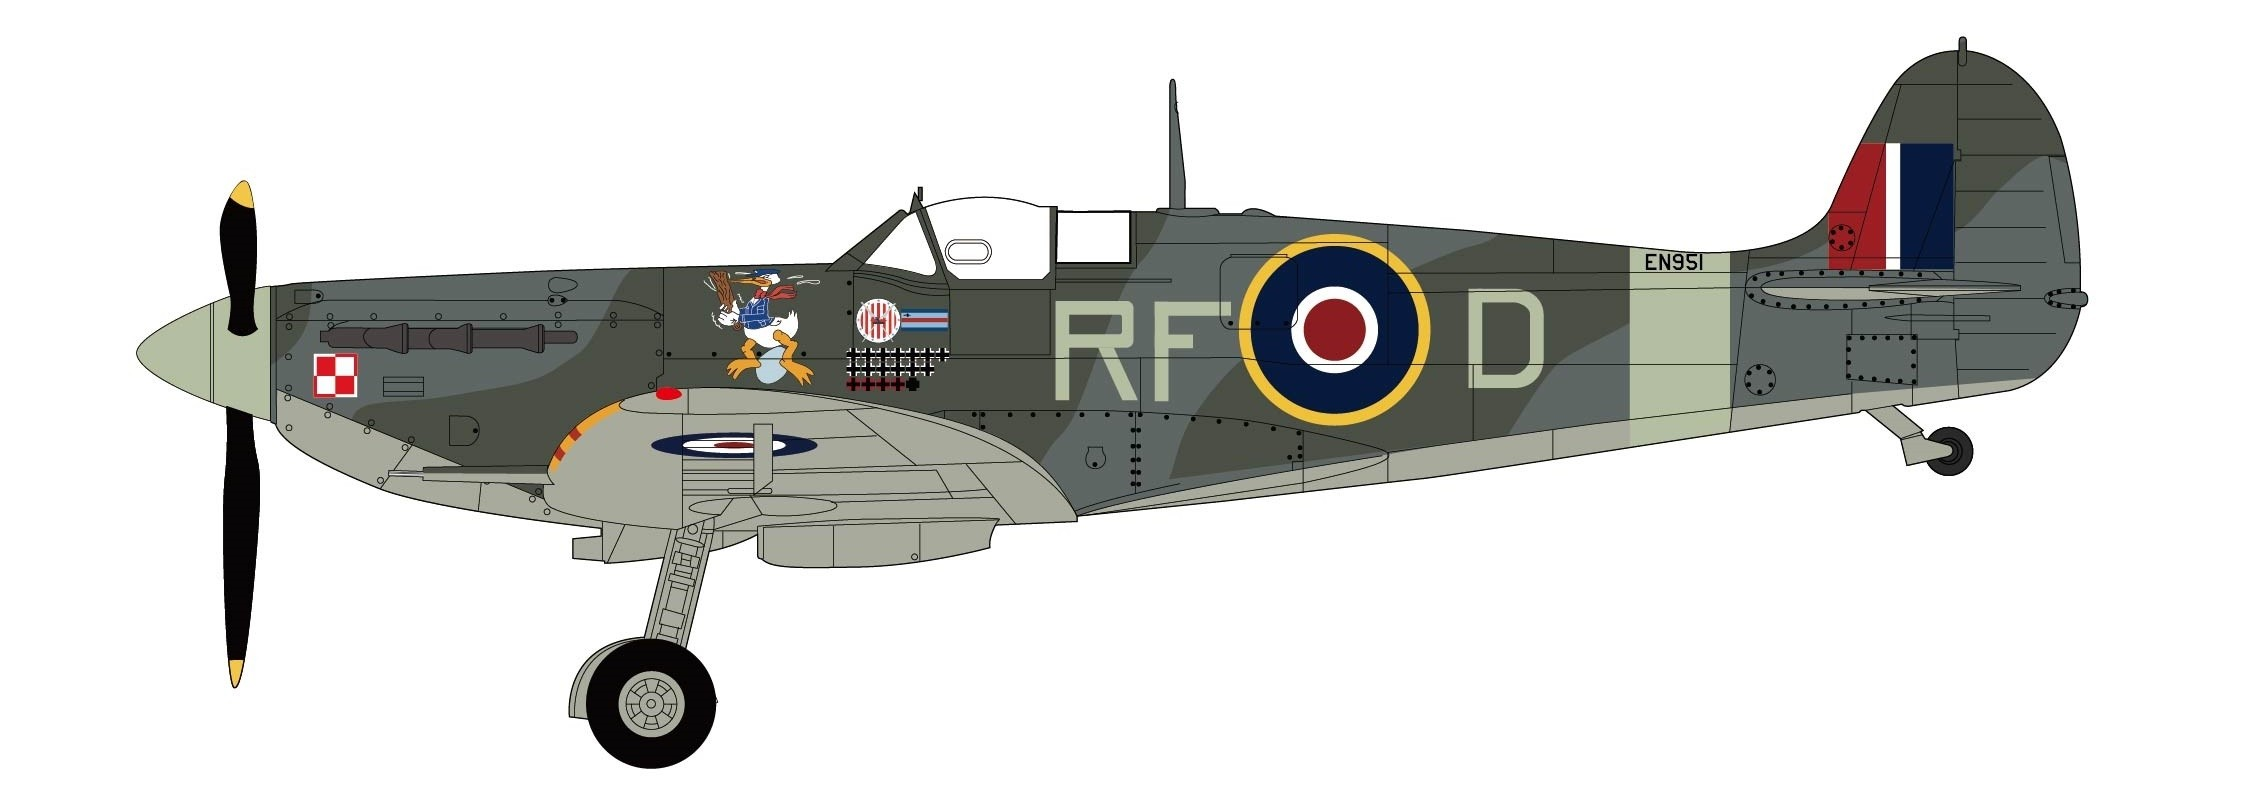 Spitfire Vb Double Ace RAF Sqn  Ldr Jan Zumbach 303